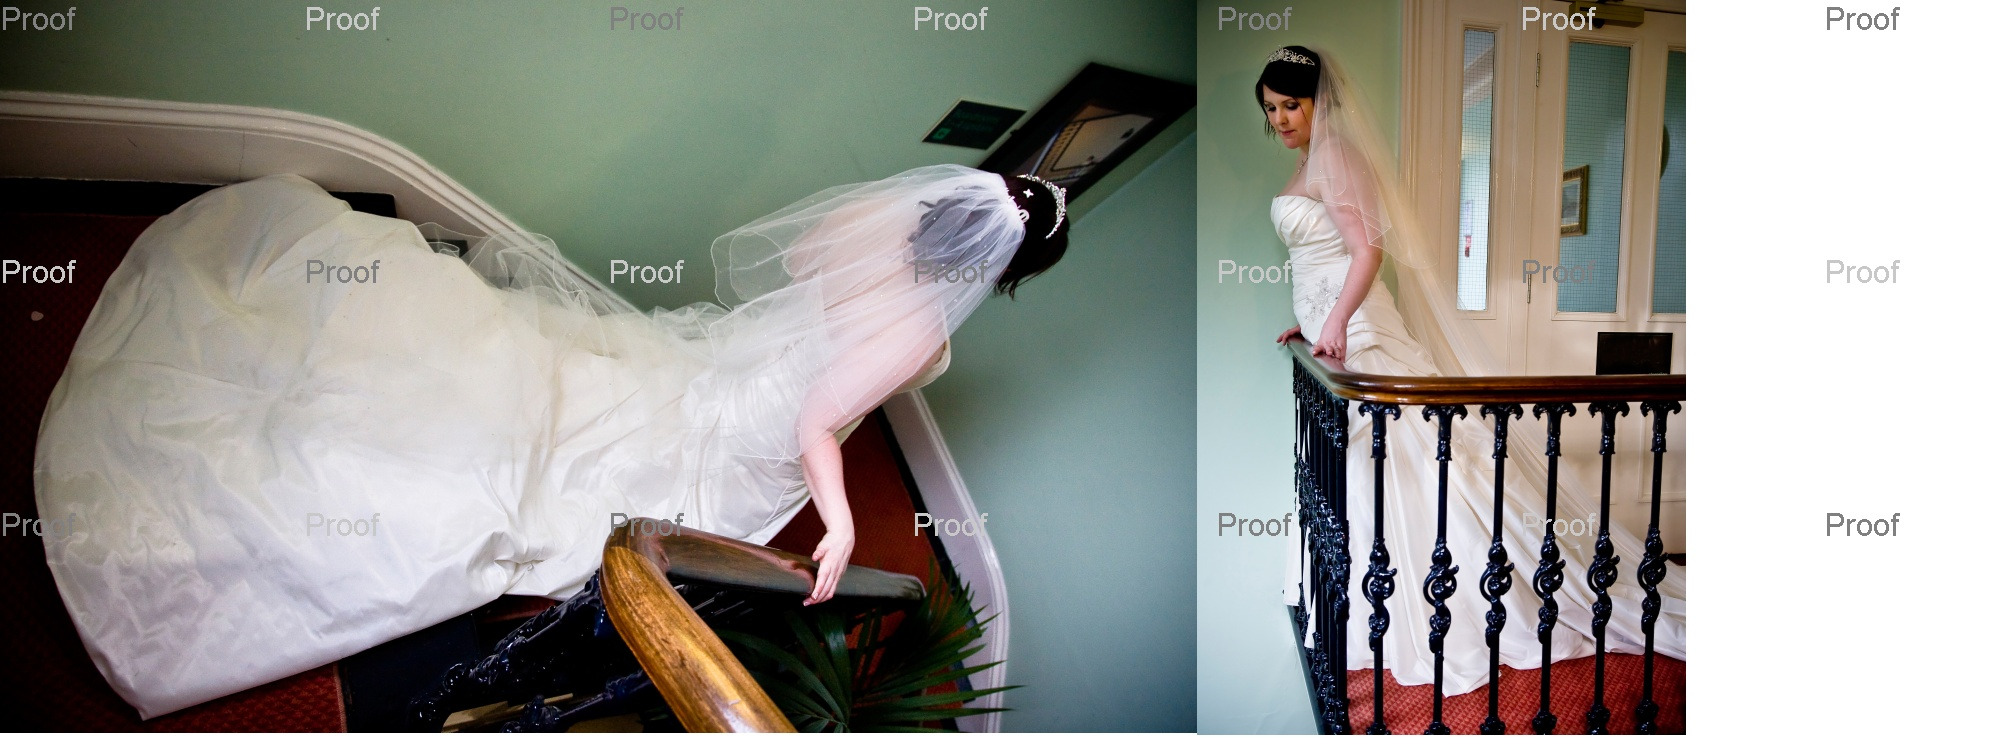 pages 66-67 of wedding storybook album with bride Louise on staircase in natural light